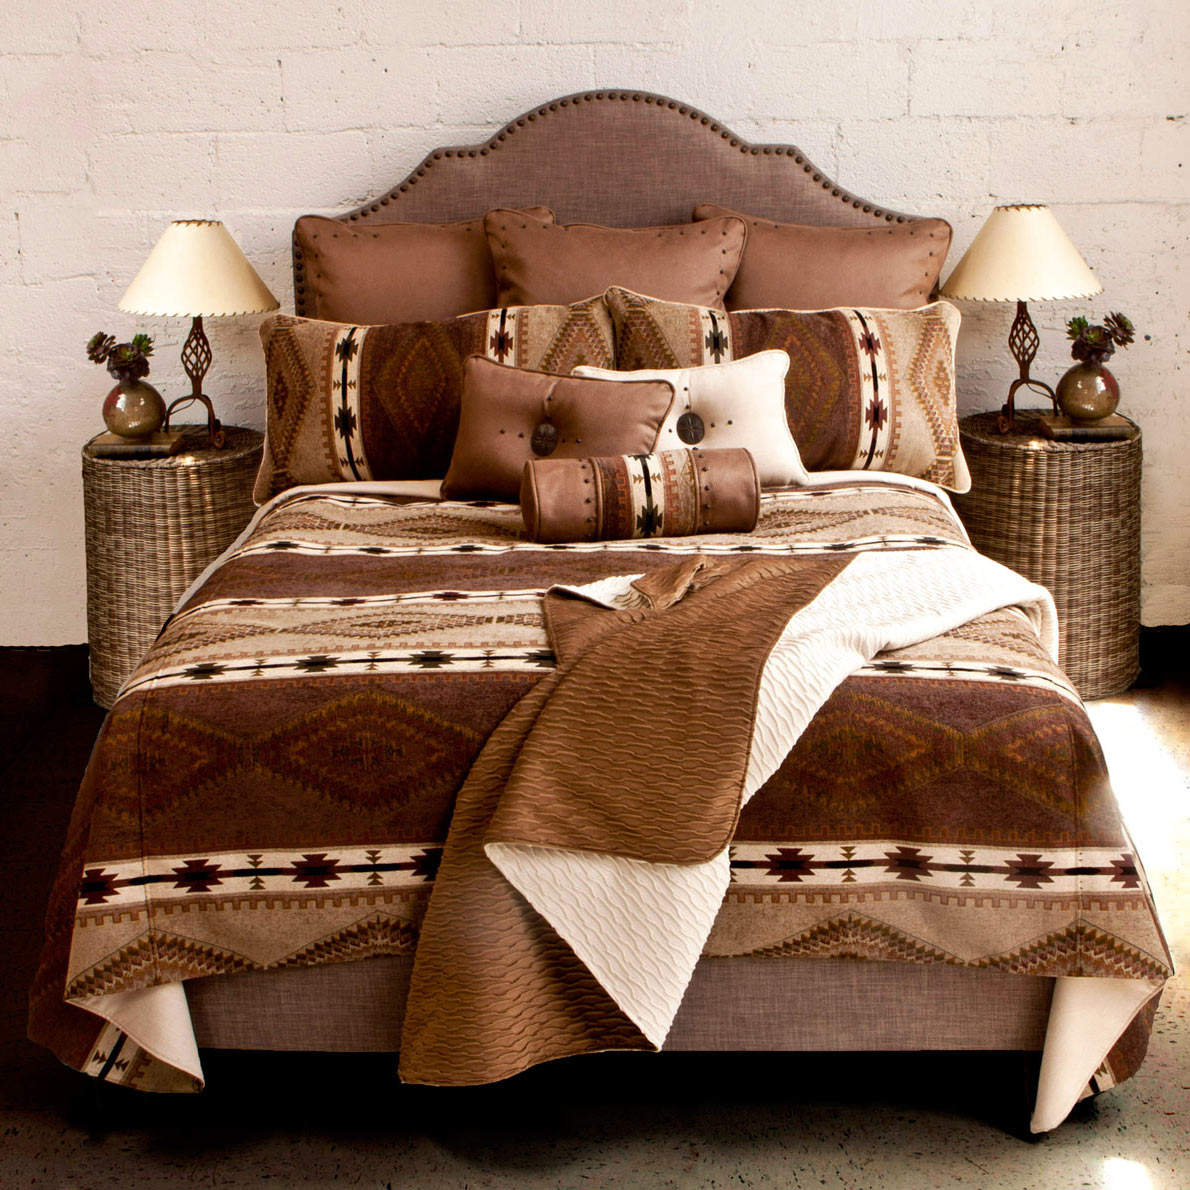 Echo Canyon Luxury Bed Set - Queen